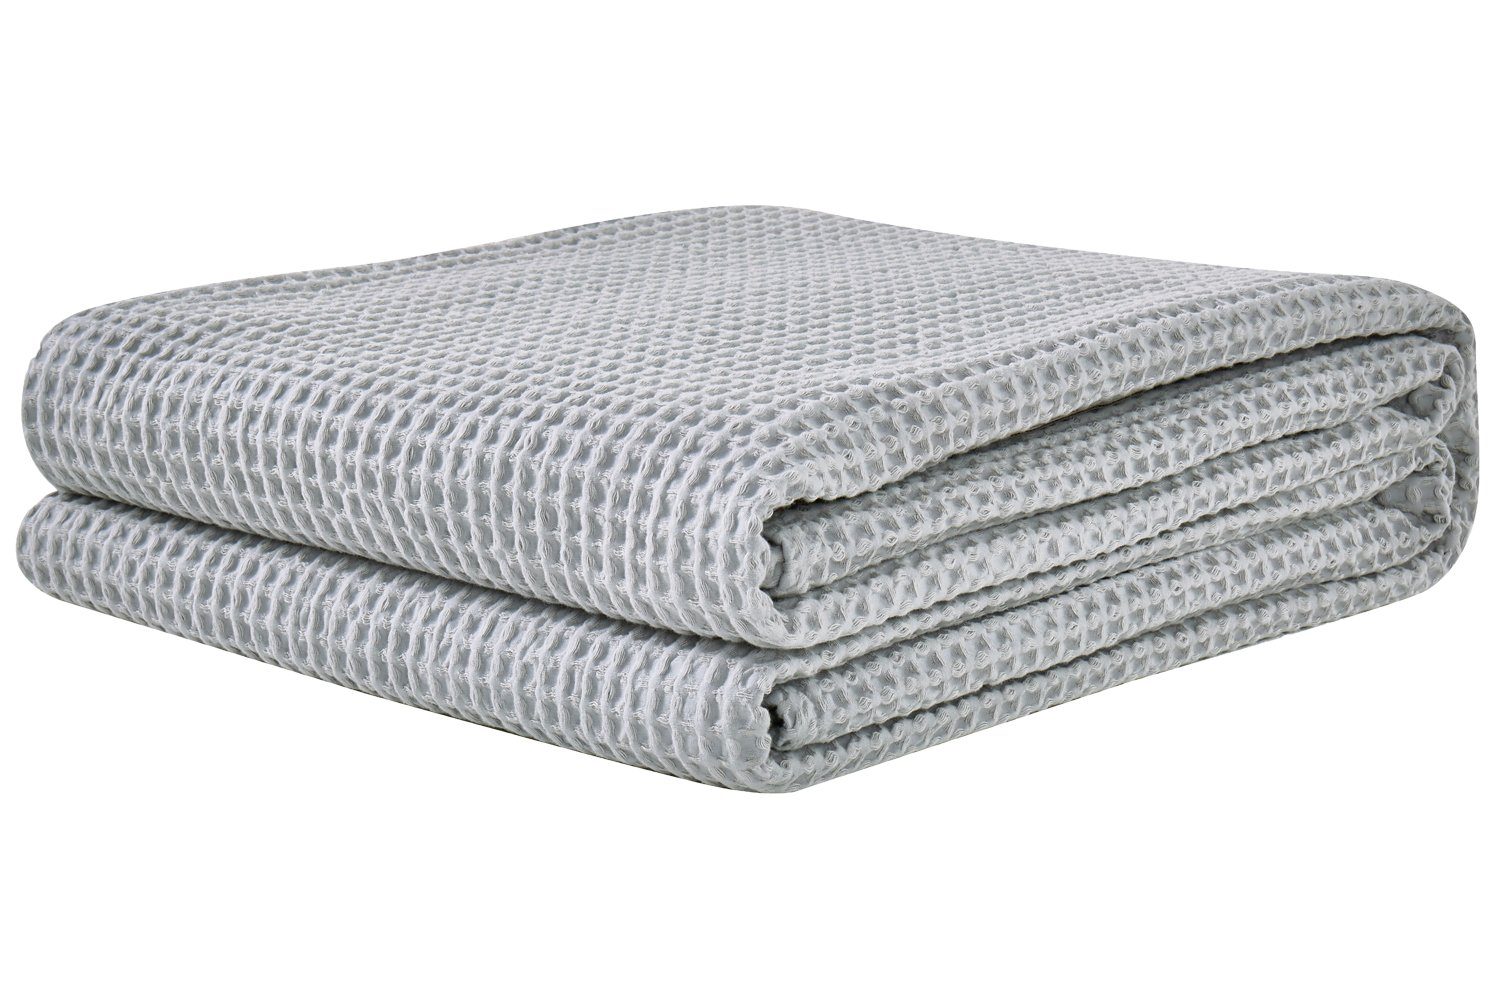 PHF Cotton Waffle Weave Bed Blanket Lightweight and Breathable Perfect Bed Home Decor Queen Size Light Grey